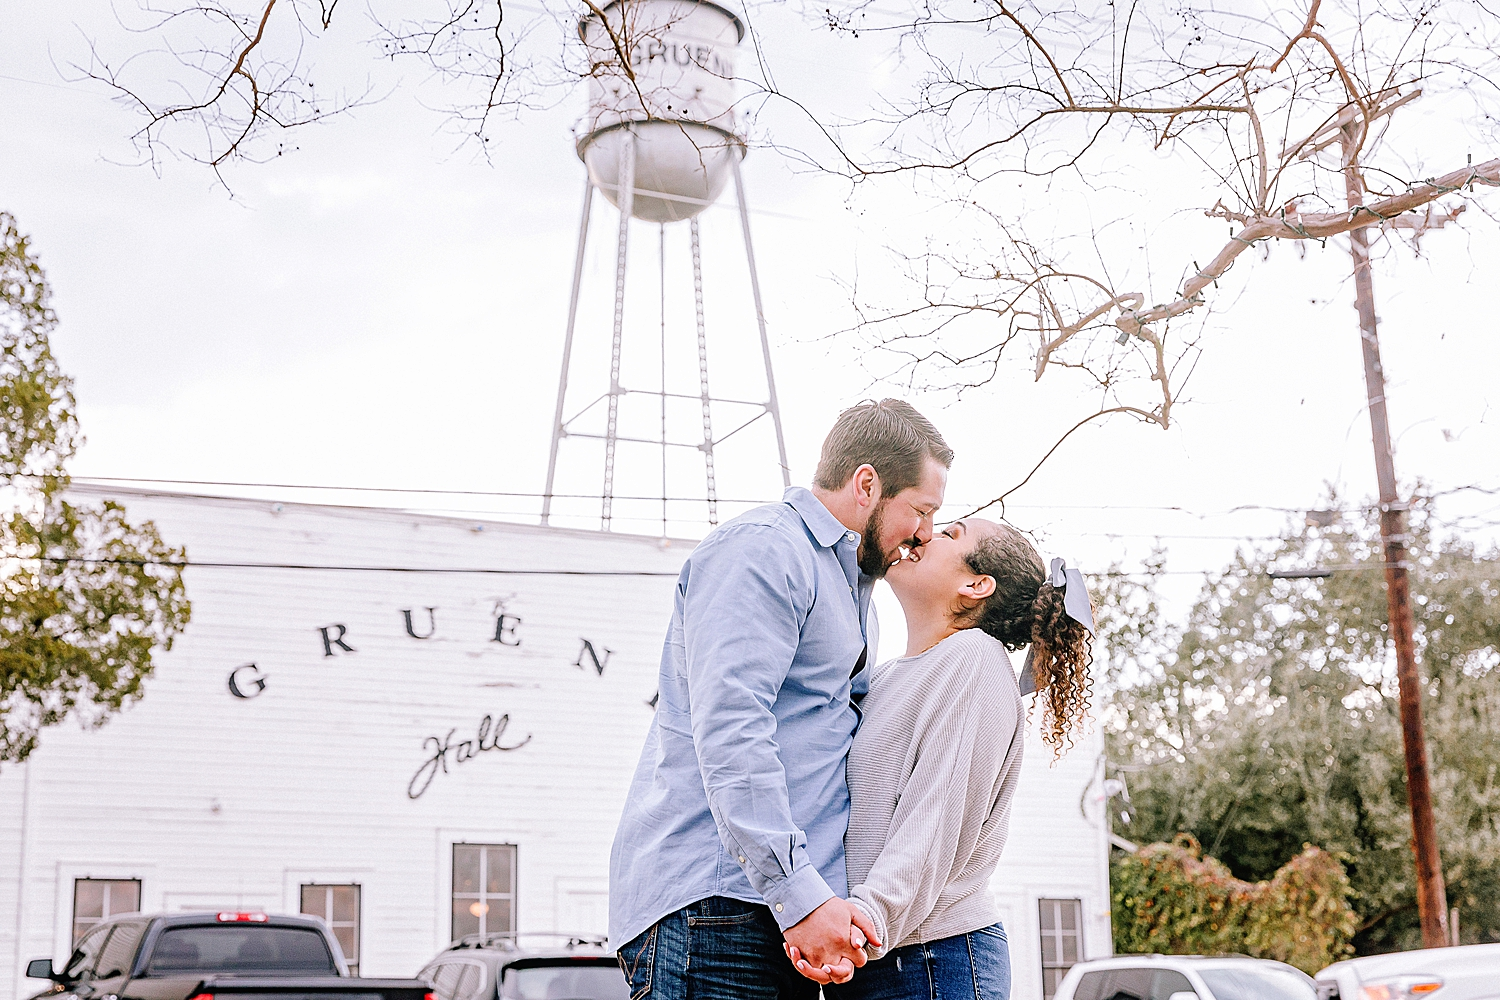 Engagement-photo-session-gruene-new-braunfels-texas-carly-barton-photography_0010.jpg